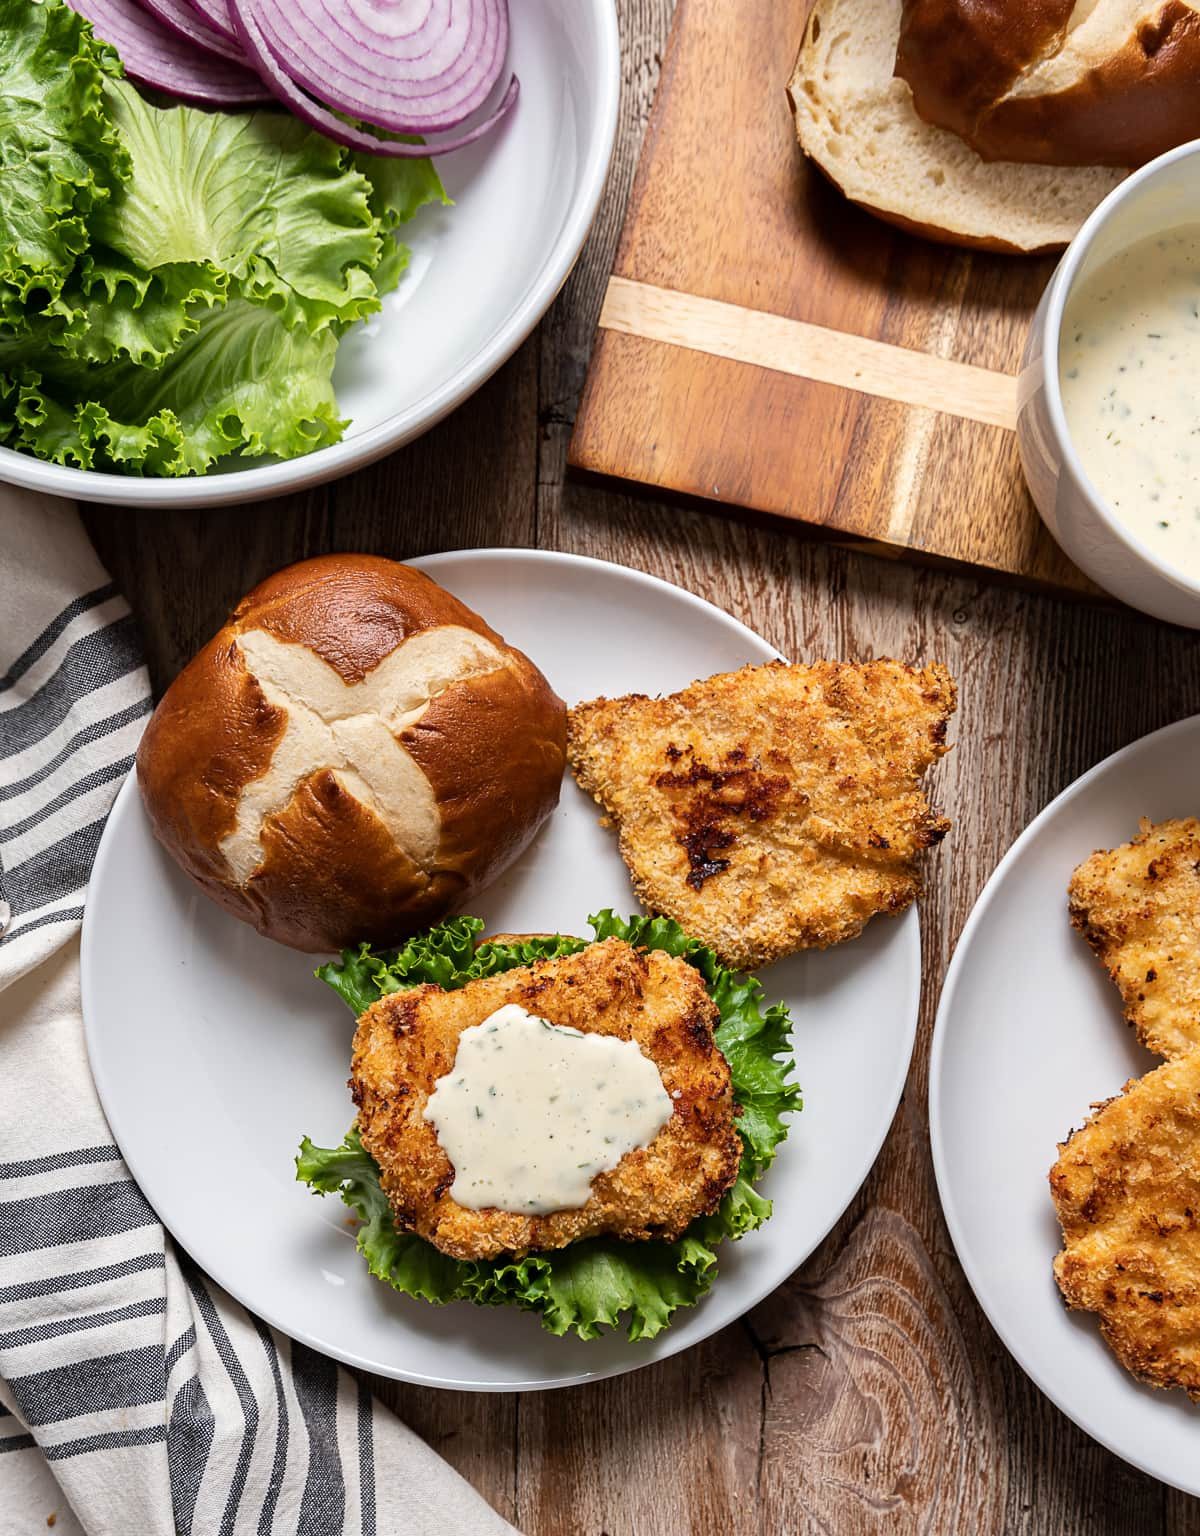 white plate with open faced sandwich , breaded fried chick on top of lettuce, white mayonnaise sauce, red onion rings, plate with thin fried chicken, bottle and glass of beer, bowl with lettuce and onions, cutting board with pretzel buns and bowl of mayonnaise sauce